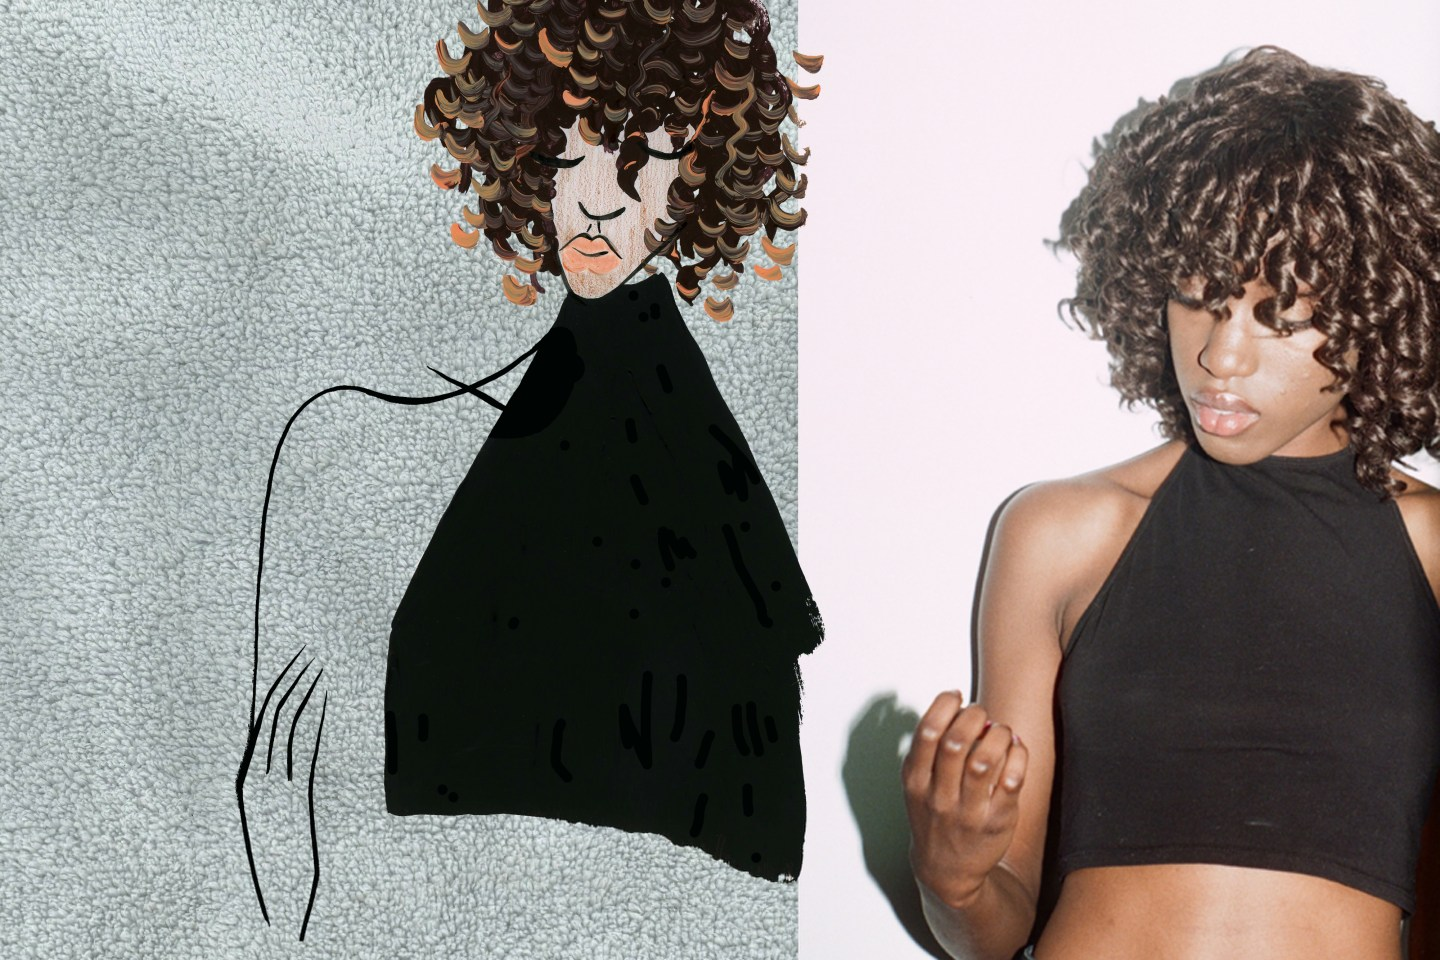 You Need To See These Gorgeous Fashion Illustrations Featuring Rihanna